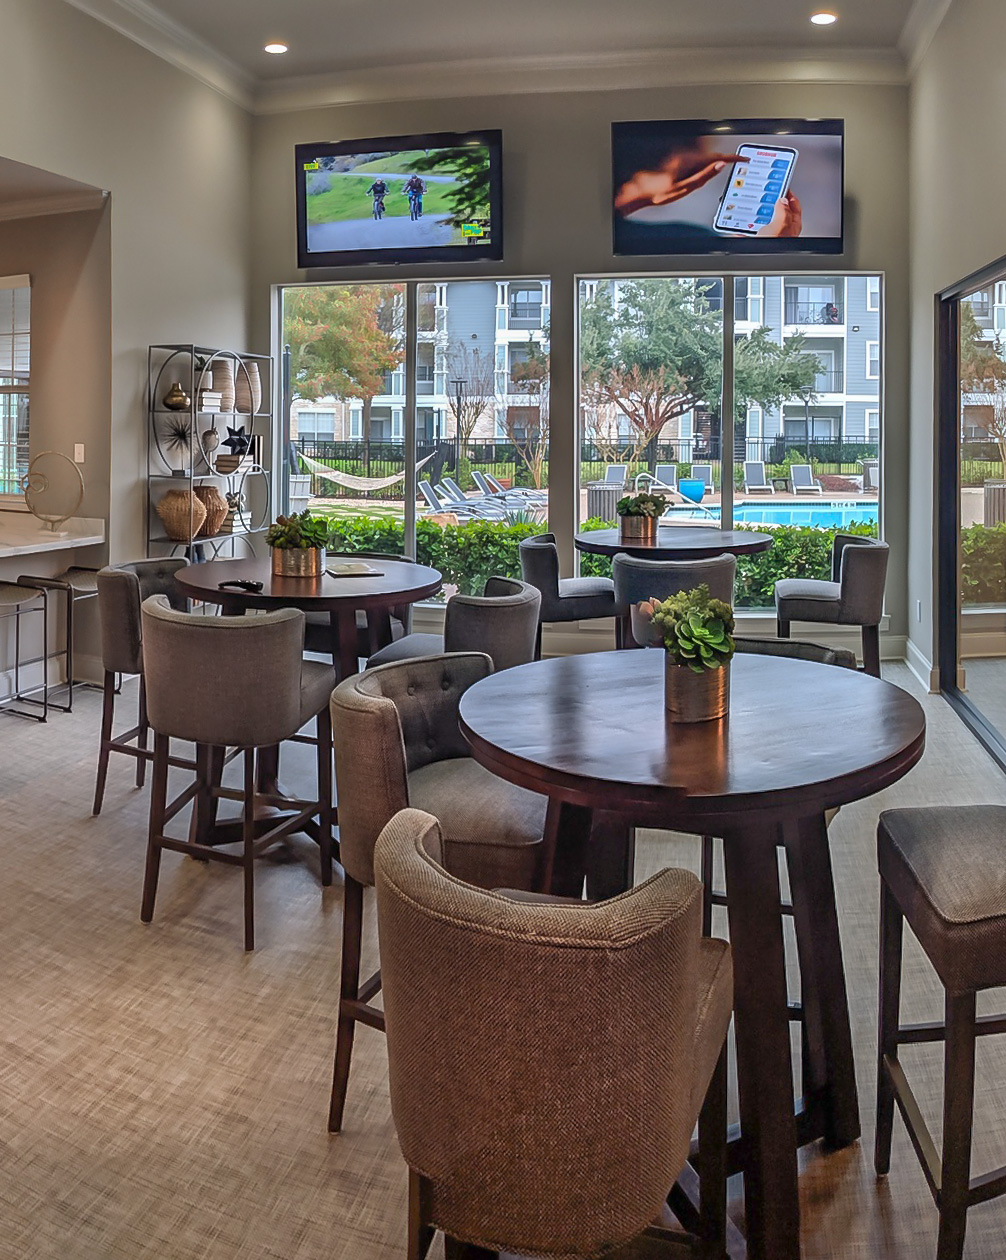 Resident Lounge Area at The Link, a Community of Luxury Apartments in Houston, Texas